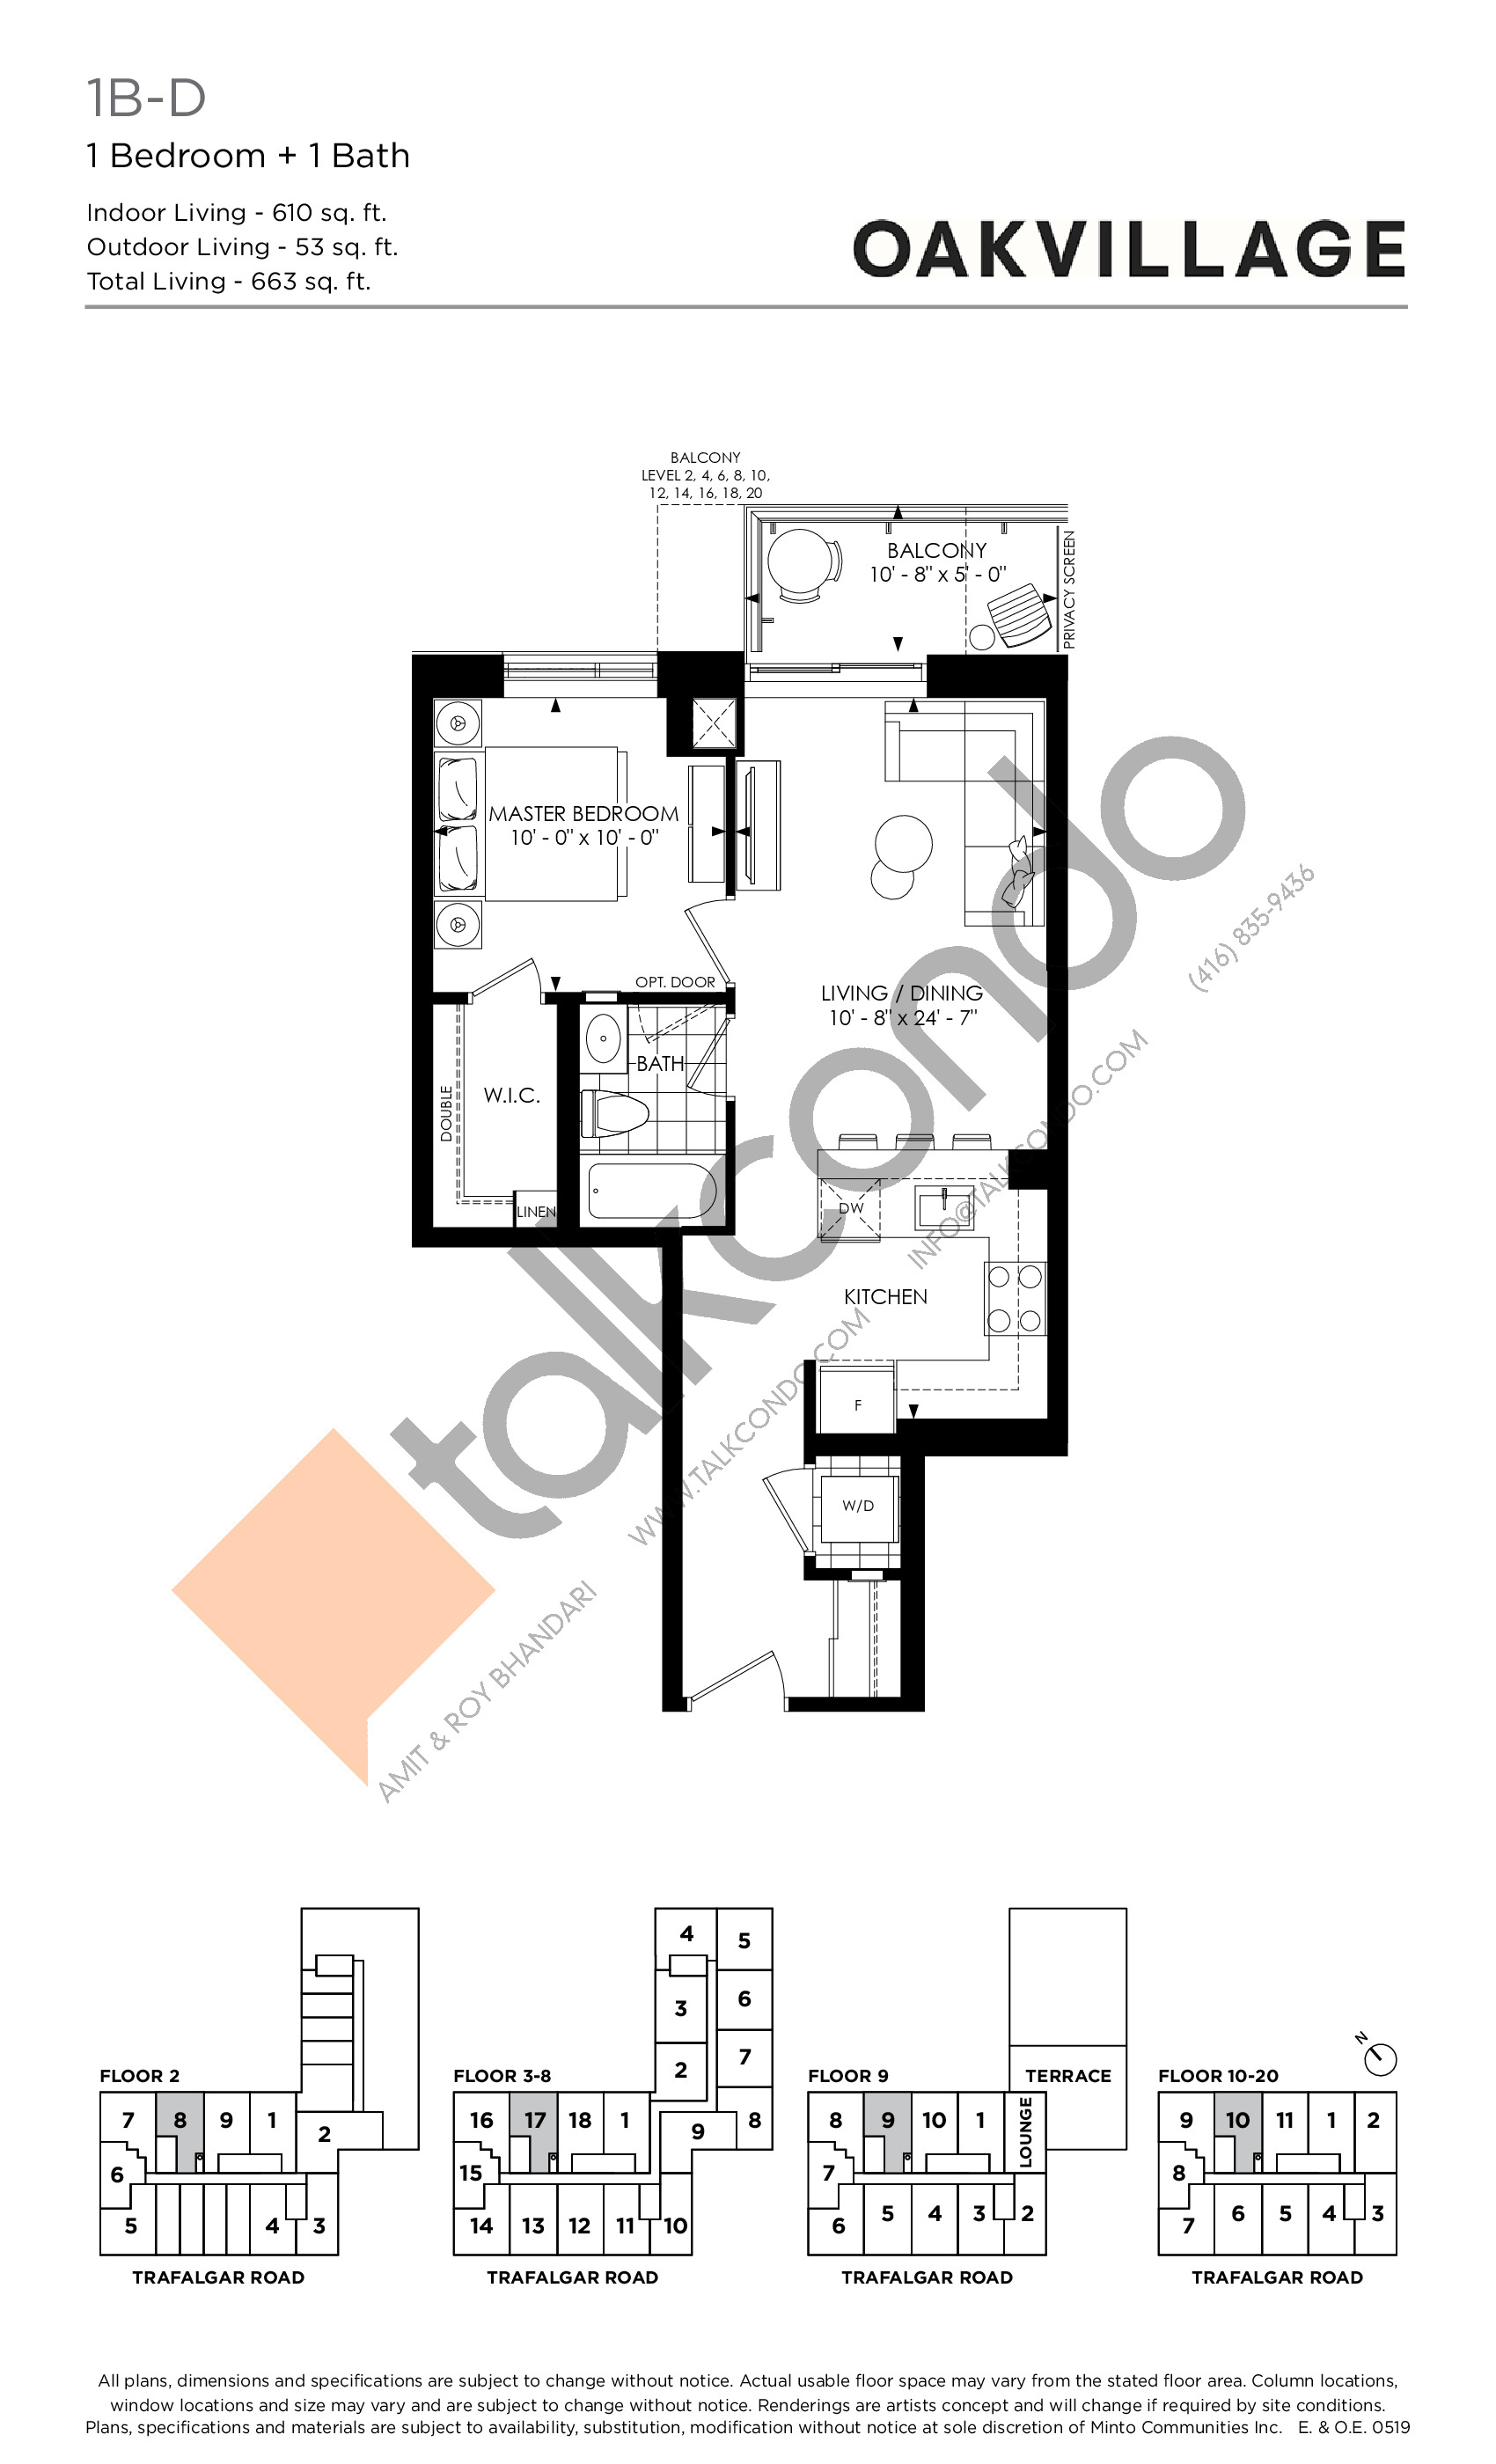 1B-D (Tower) Floor Plan at Oakvillage Phase 2 - 610 sq.ft